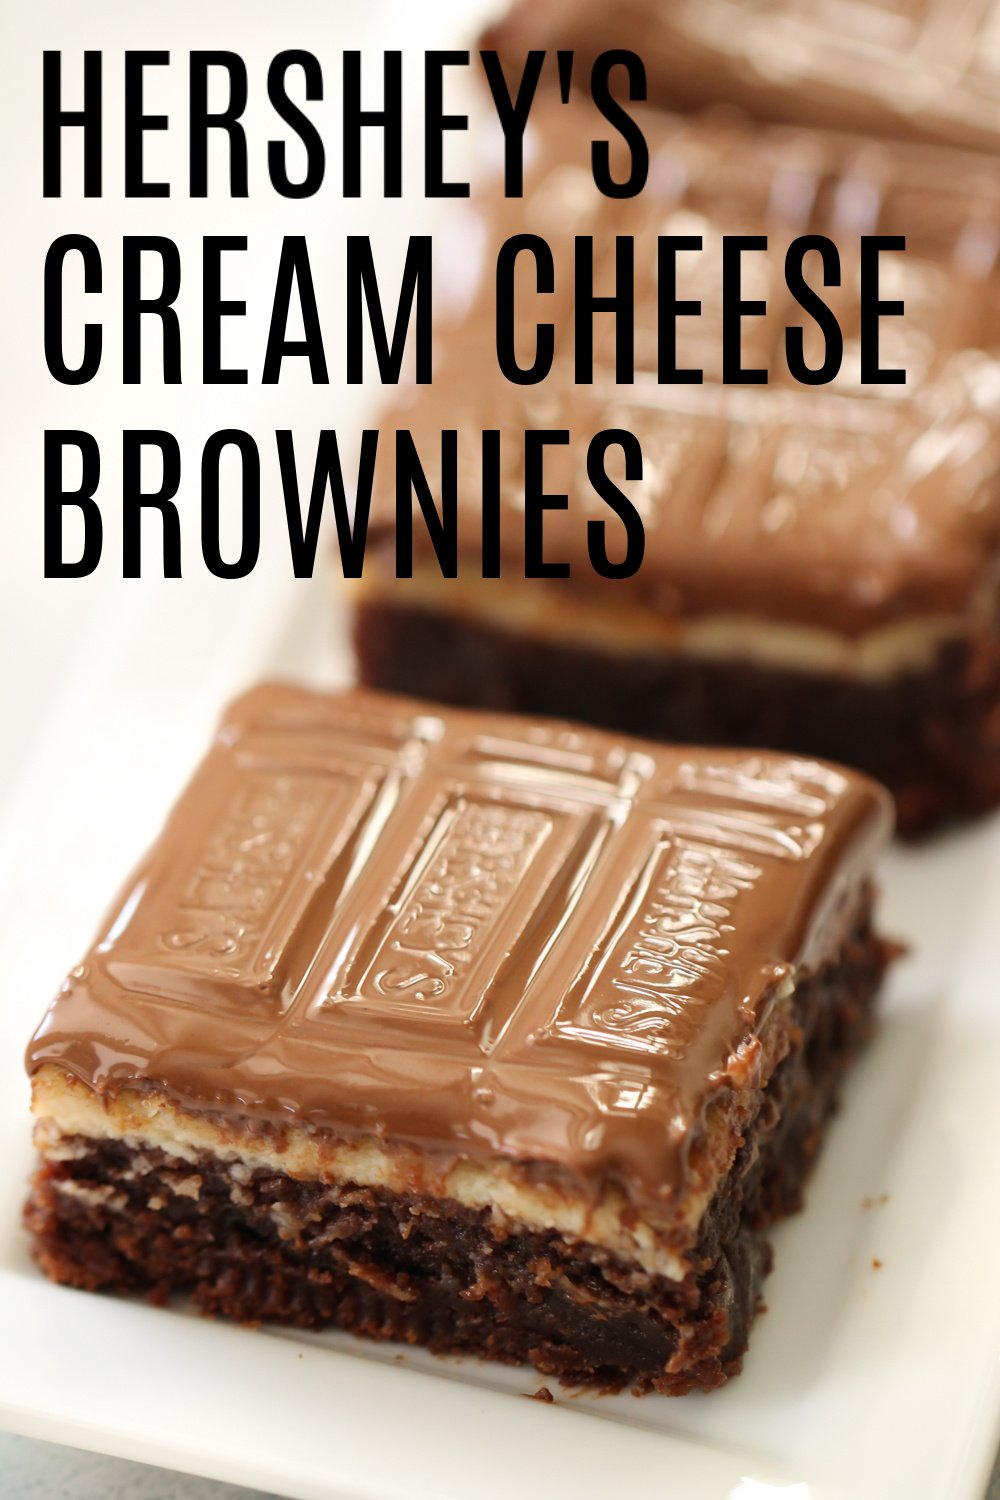 Hershey's Cream Cheese Brownies Recipe